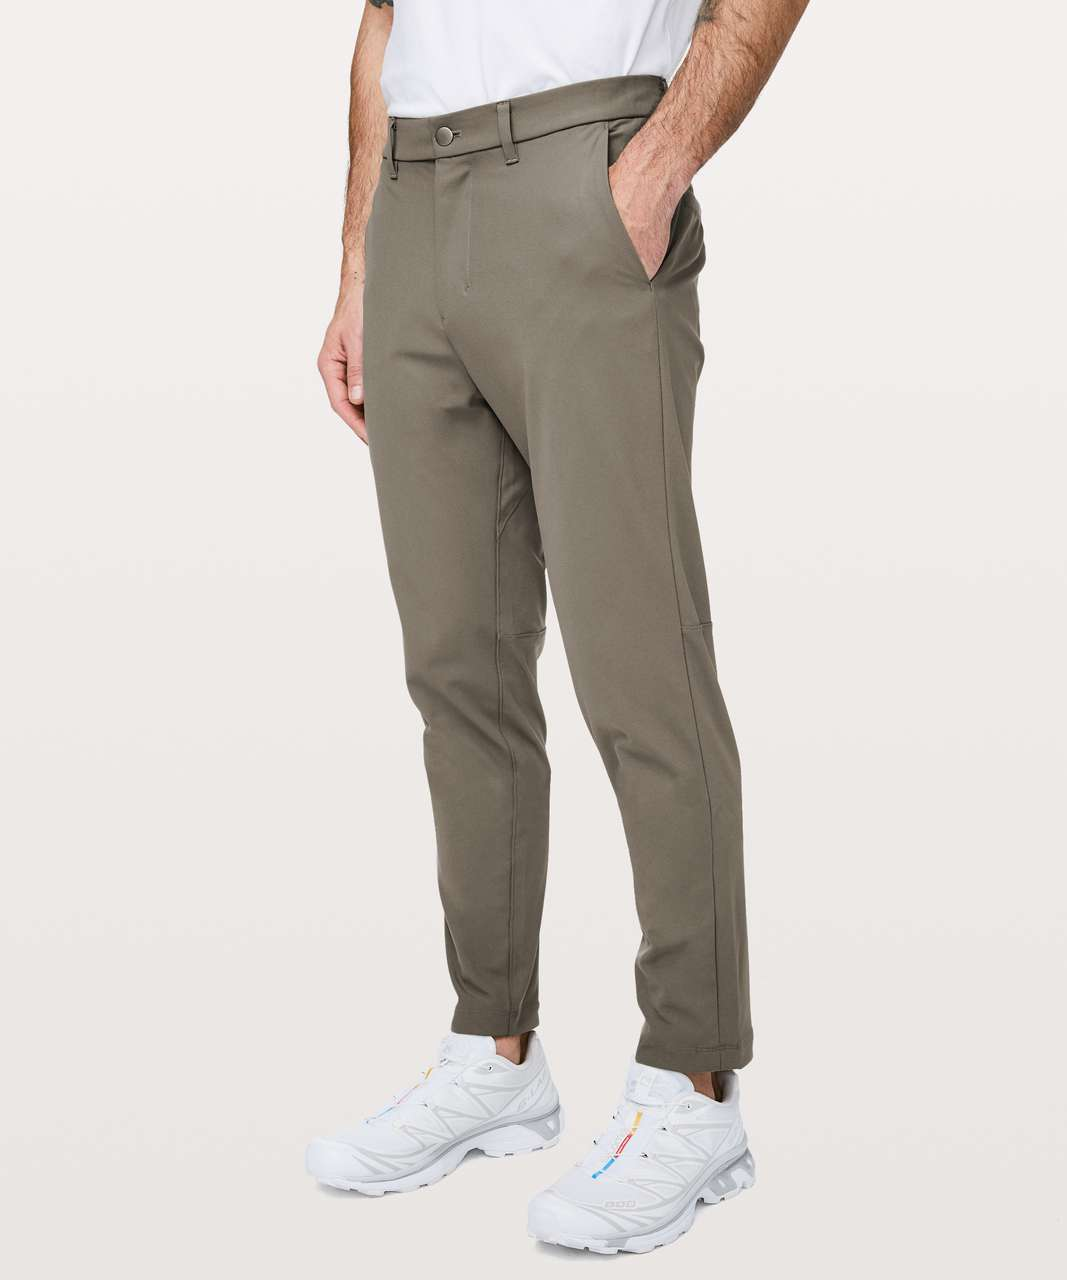 "Lululemon Commission Pant Slim *Warpstreme 32"" - Nomad"